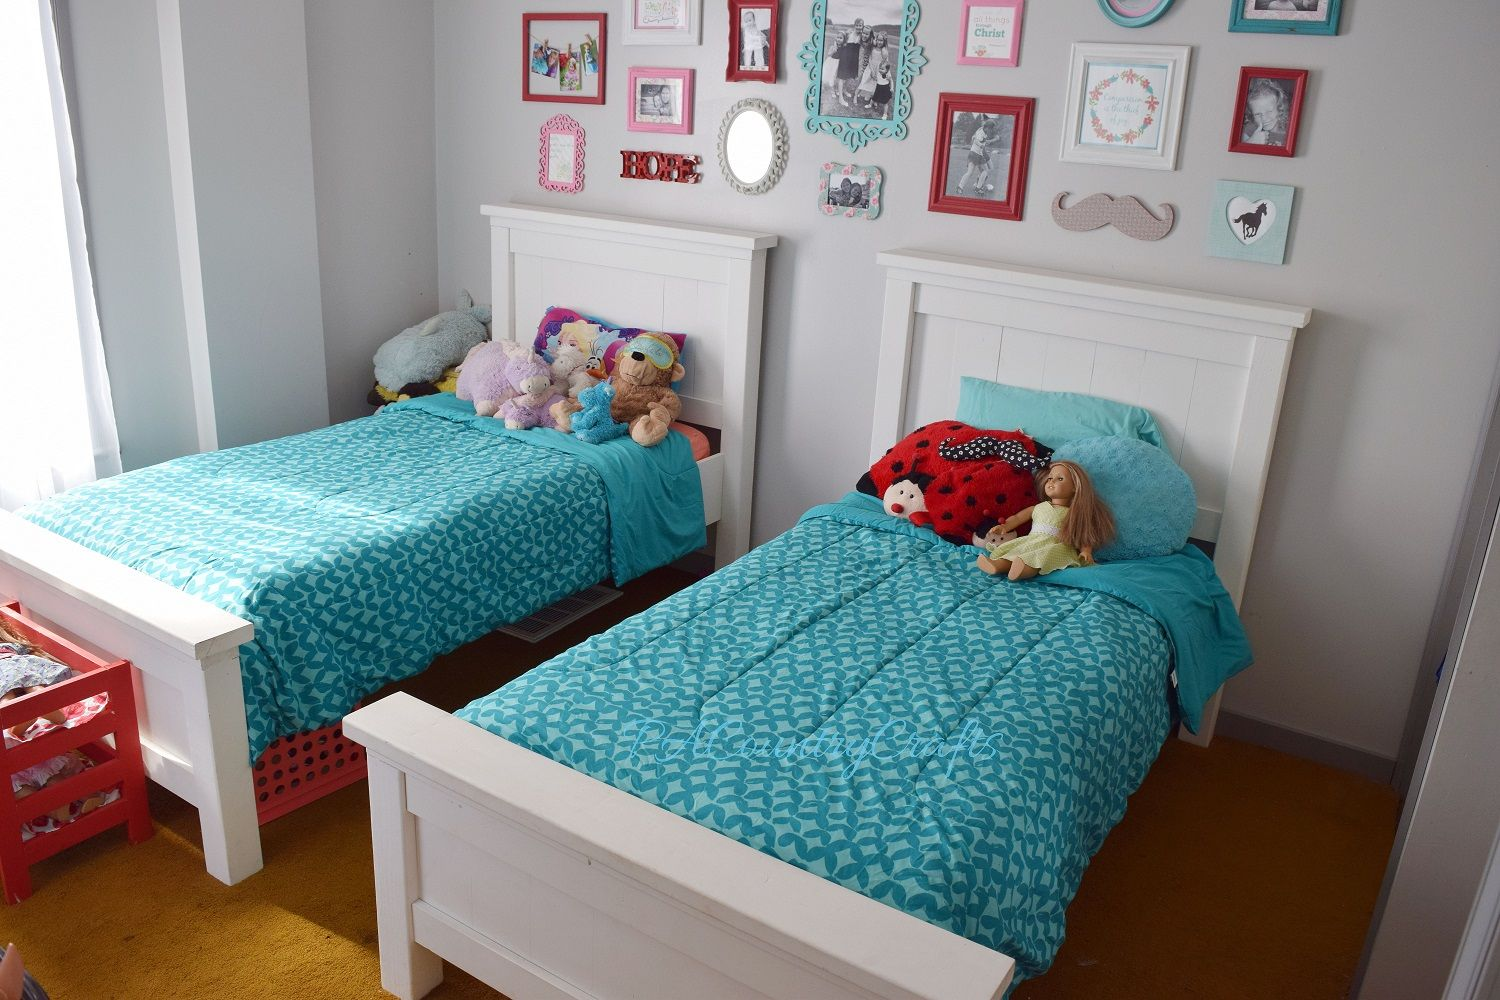 Best Twin Farmhouse Beds Do It Yourself Home Projects From Ana White With Images Farmhouse 400 x 300